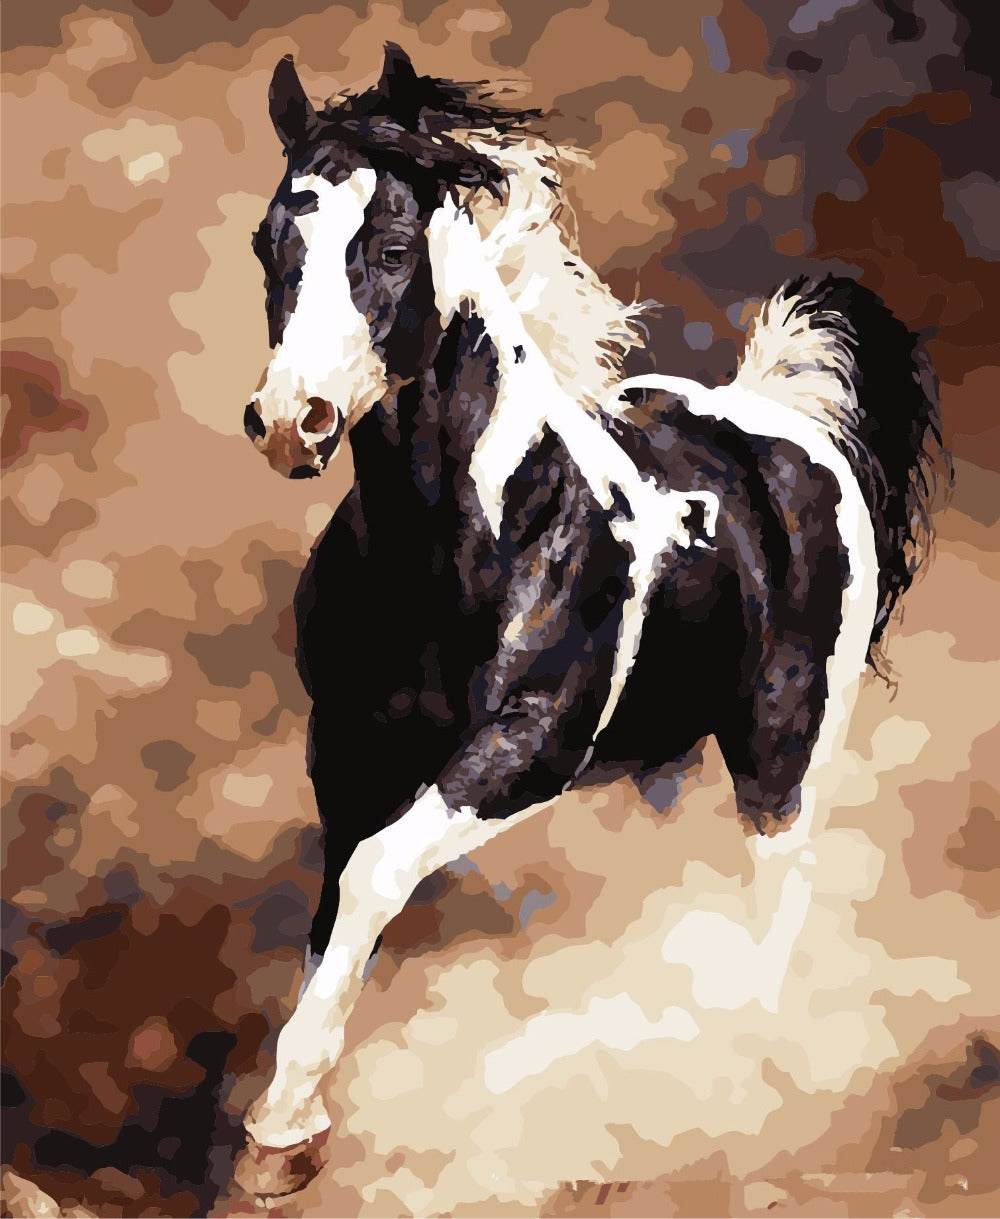 Black white horse diy paint by numbers kits for adults